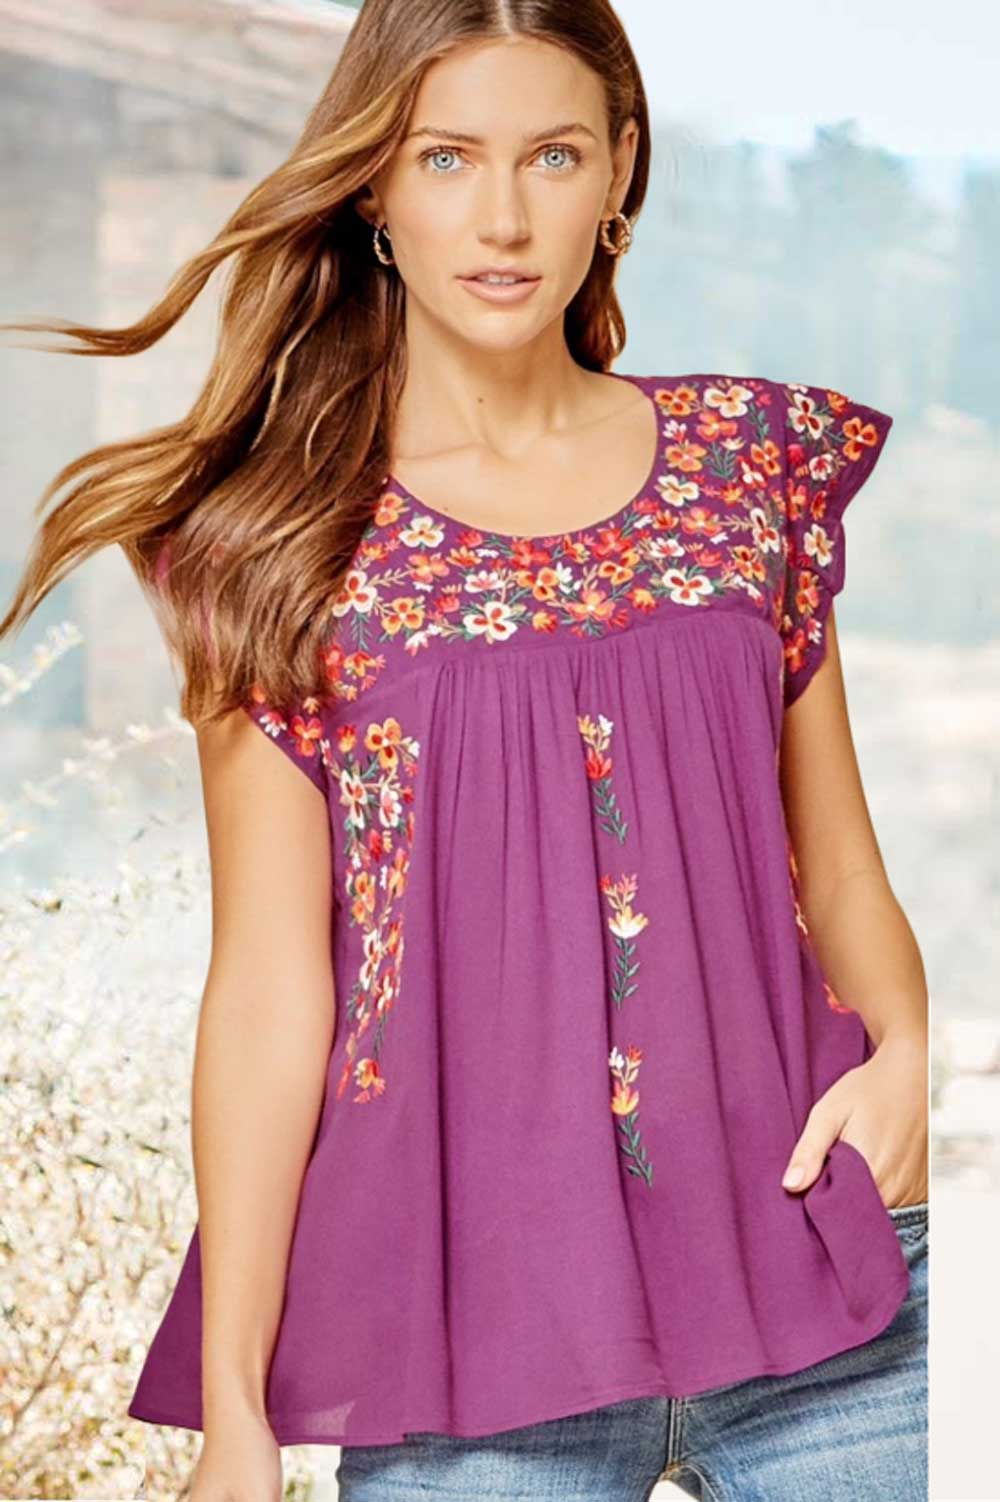 Clothing Blossom Embroidered Top in Magenta Savanna Jane